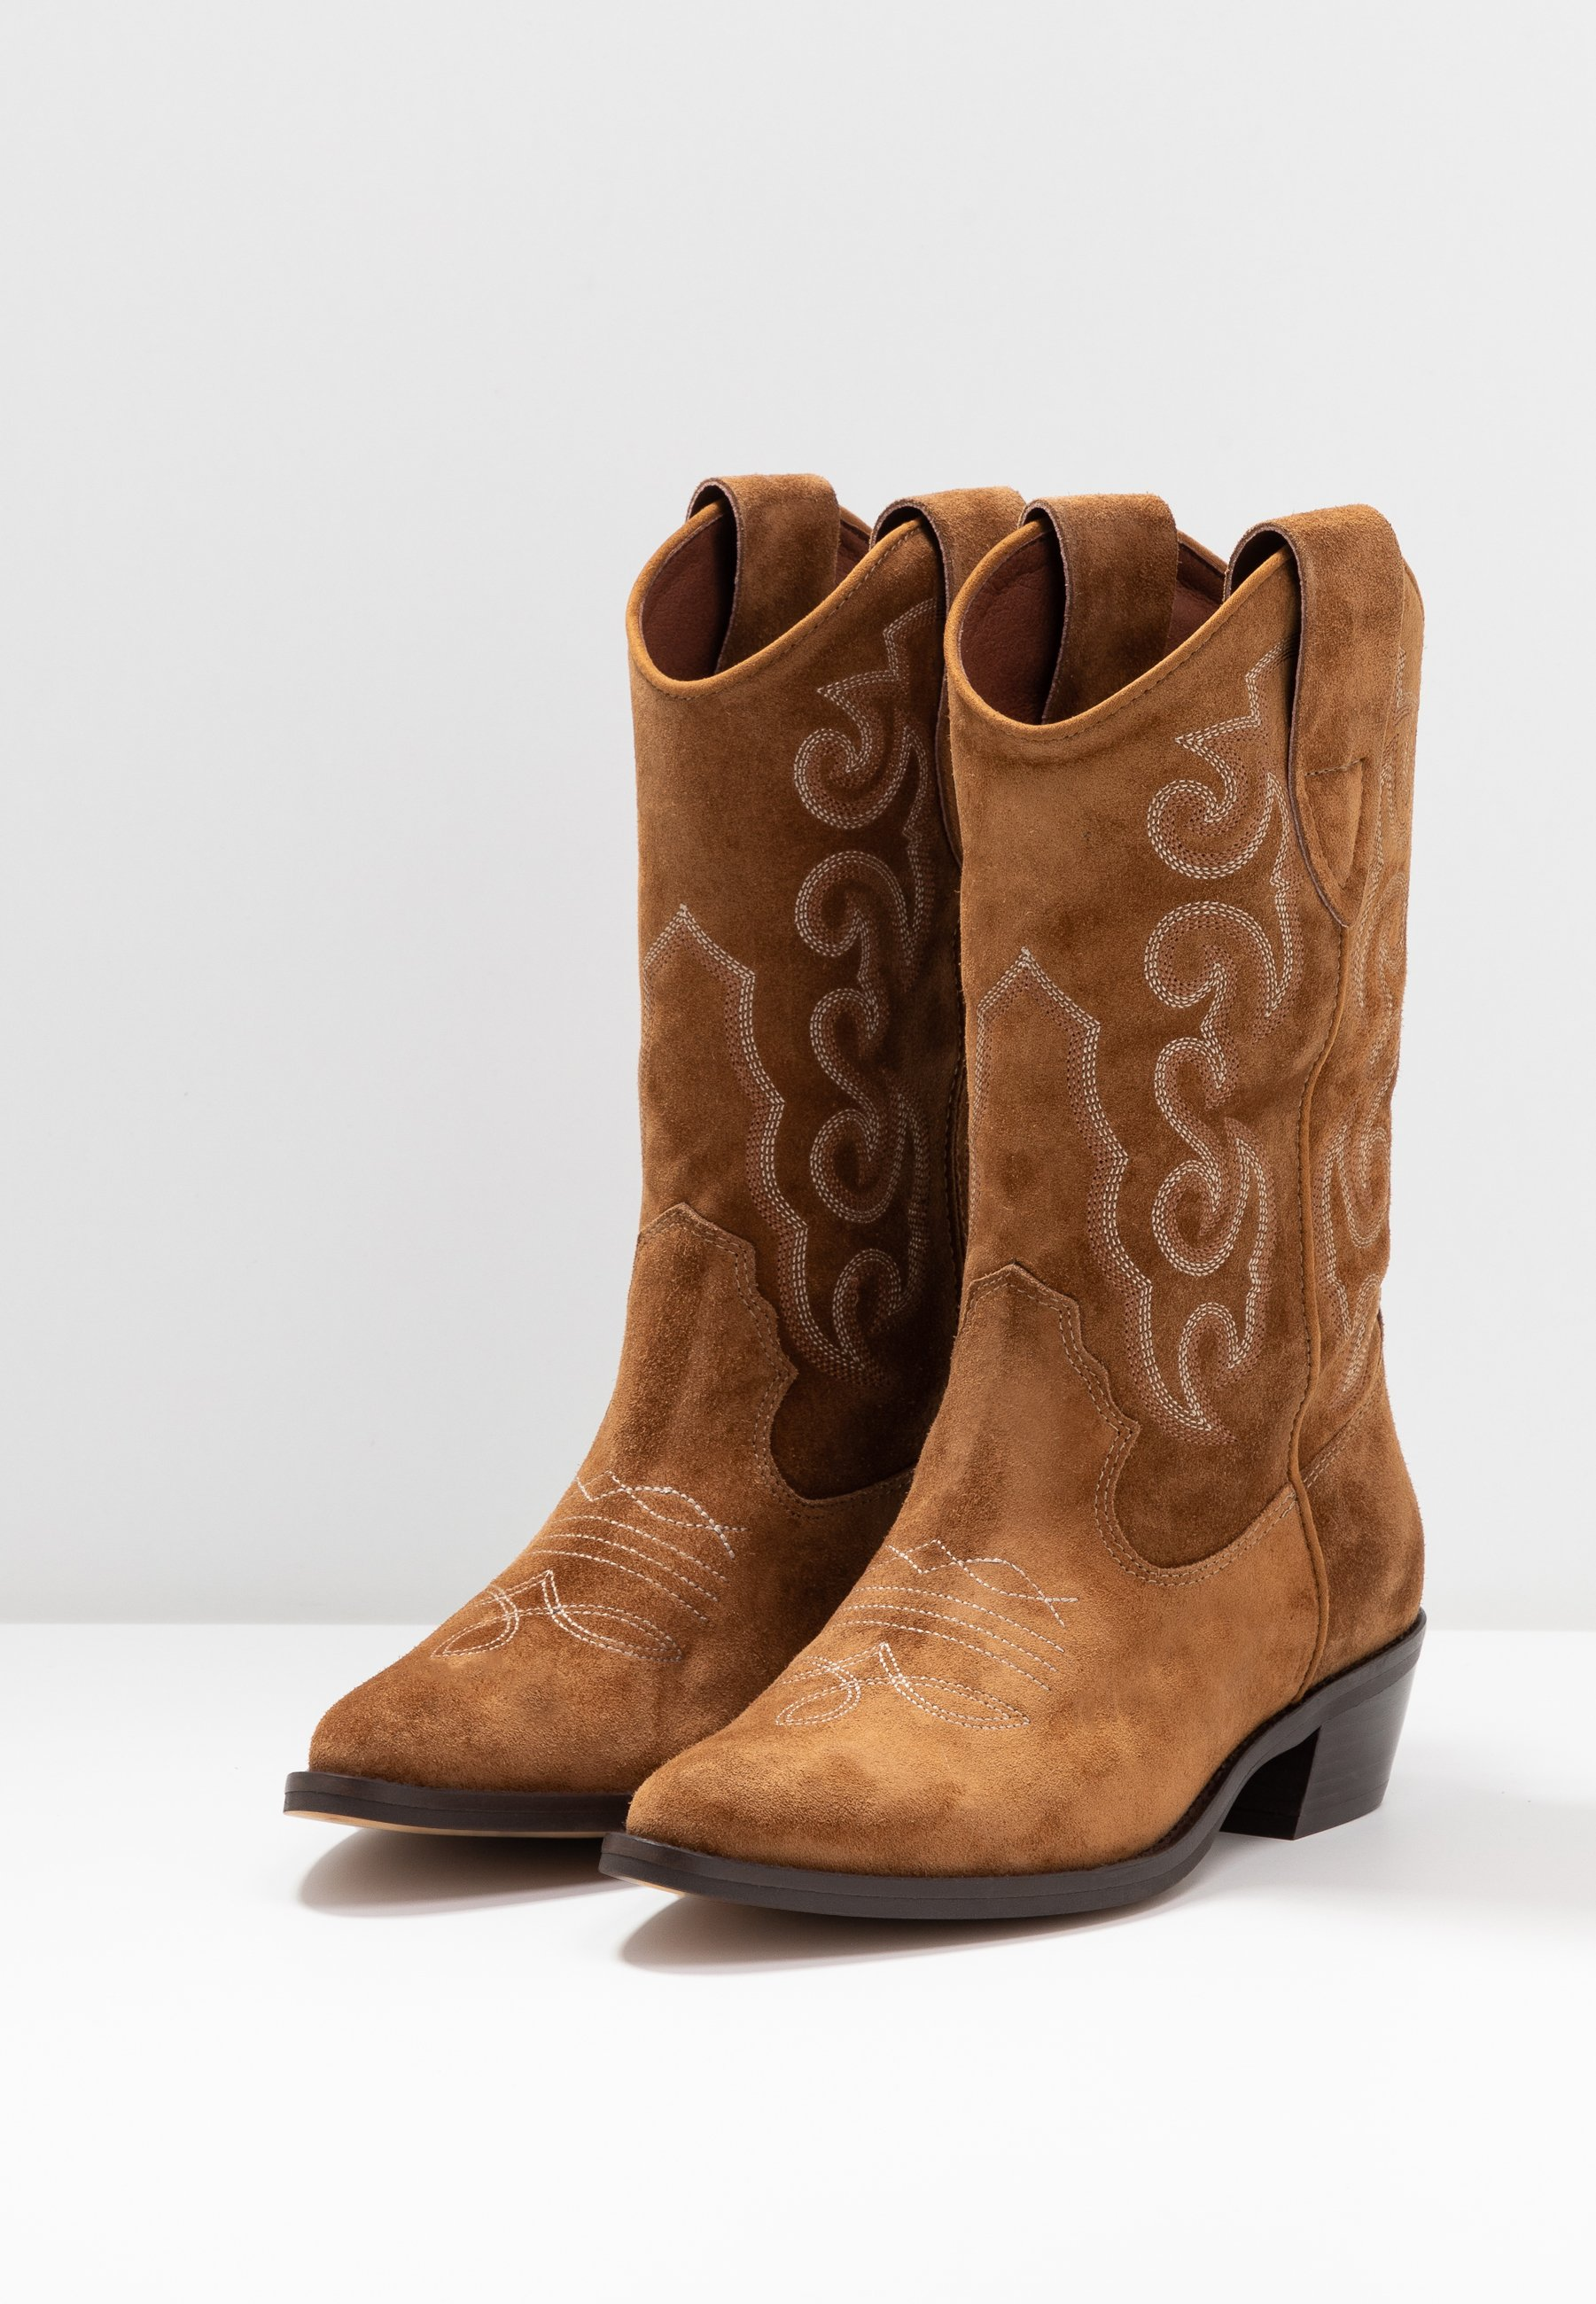 Good Selling Limited New Women's Shoes Alpe ROSE Cowboy/Biker boots cognac iC4Vae2gY 8IKxGlvbN